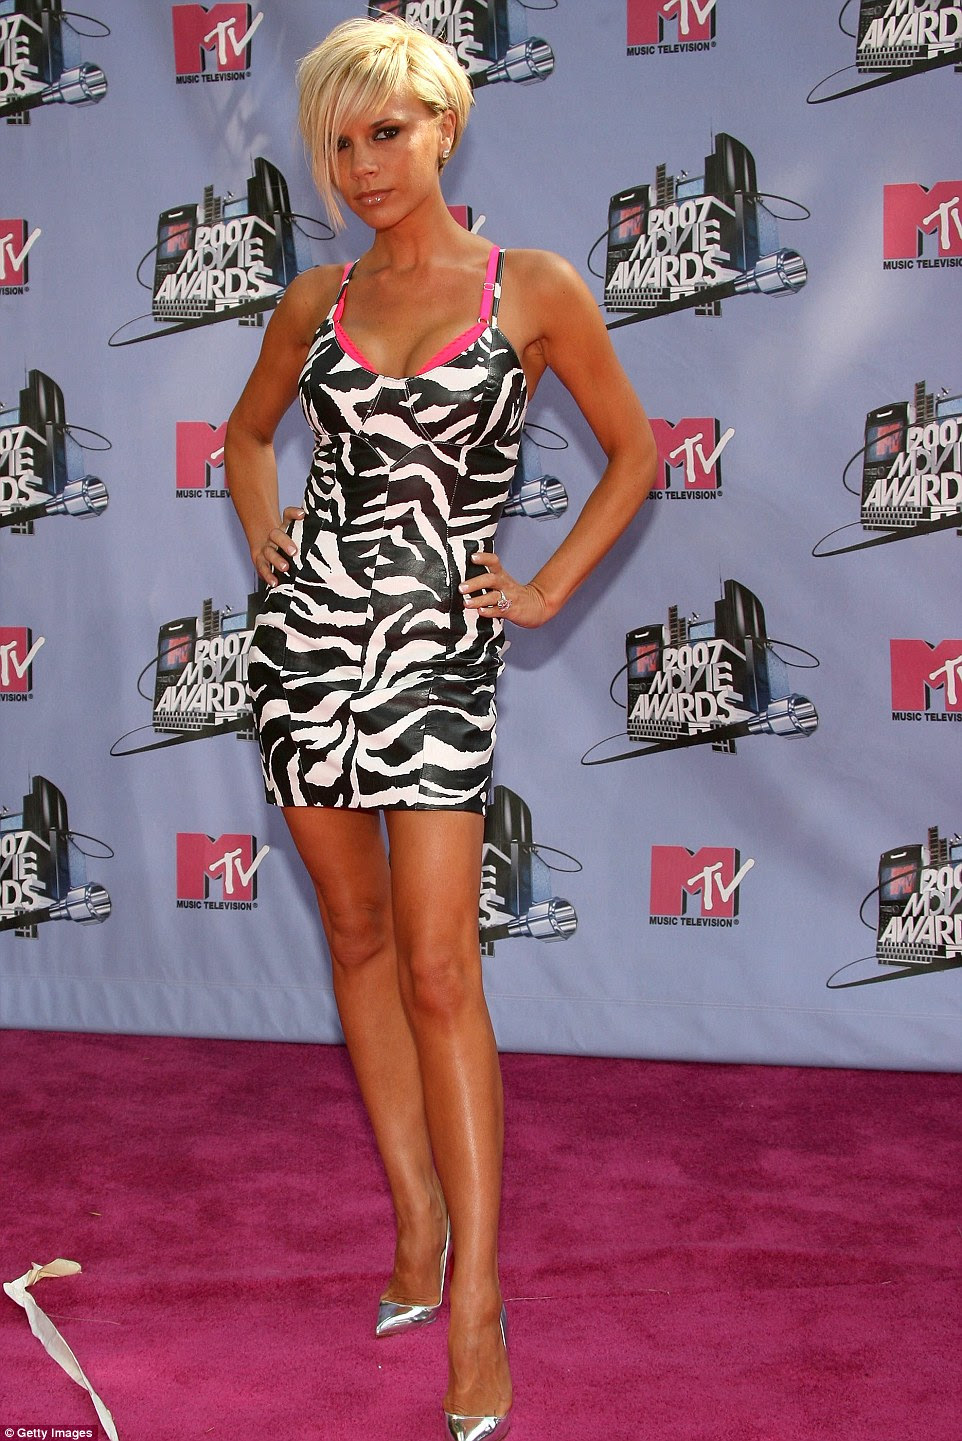 When the Beckhams relocated to LA in 2007, Victoria failed to impress in this trashy zebra Michael Hoban minidress